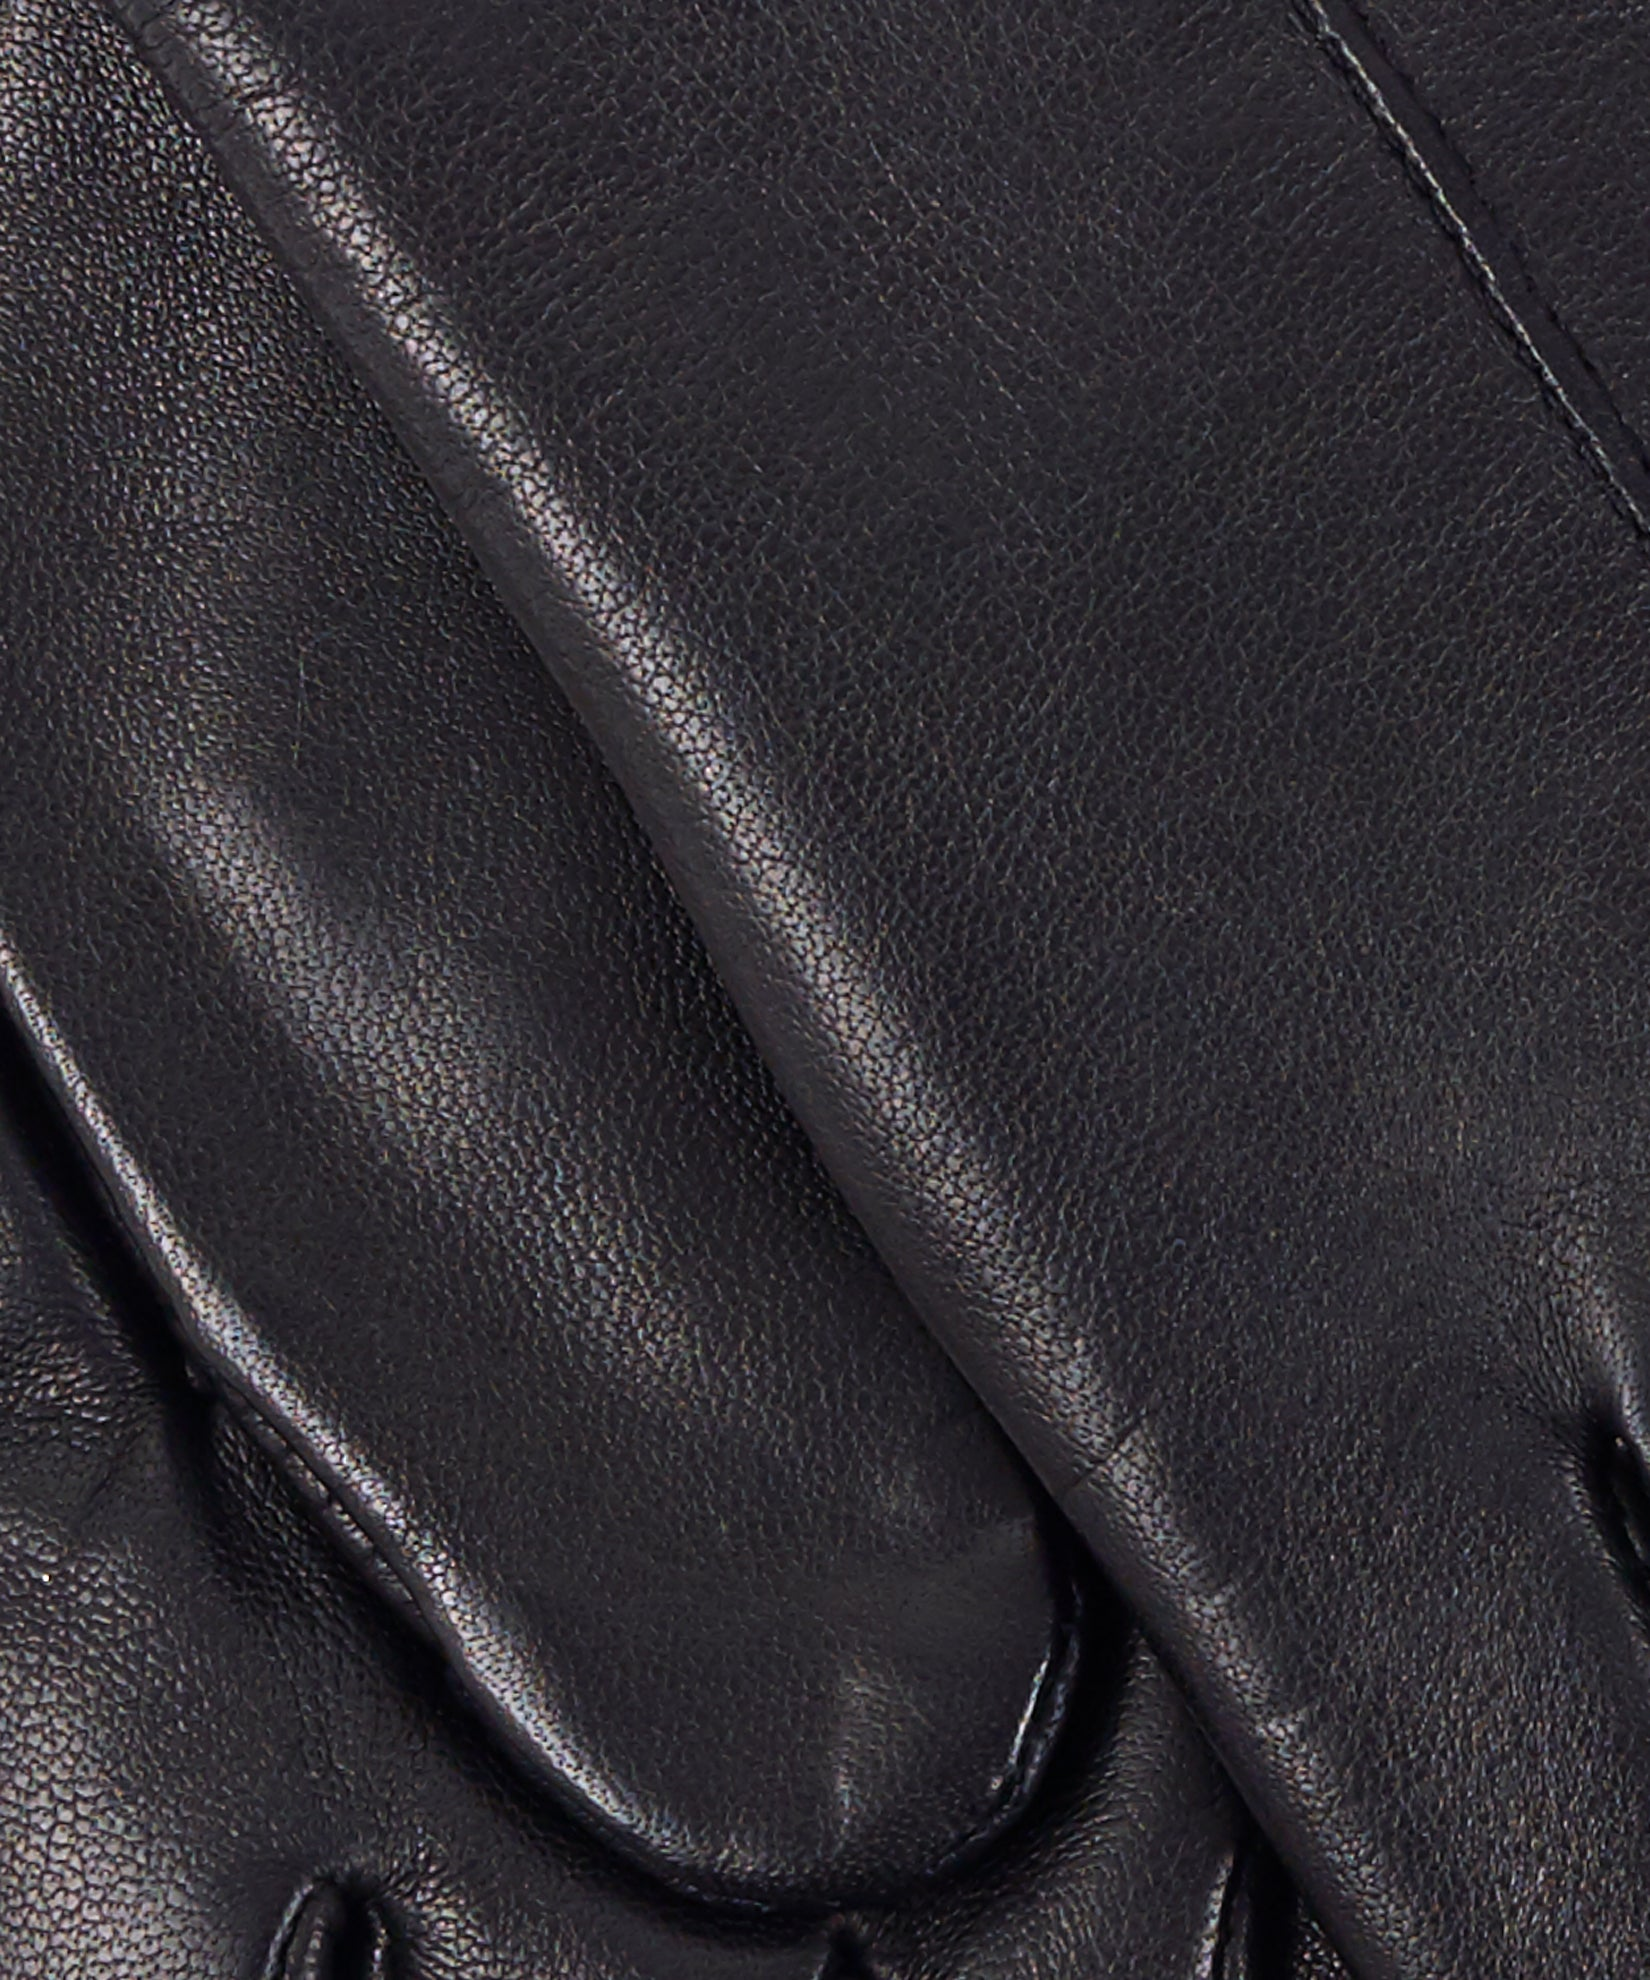 Black/Black - Leather Colorblock Fourchette Glove